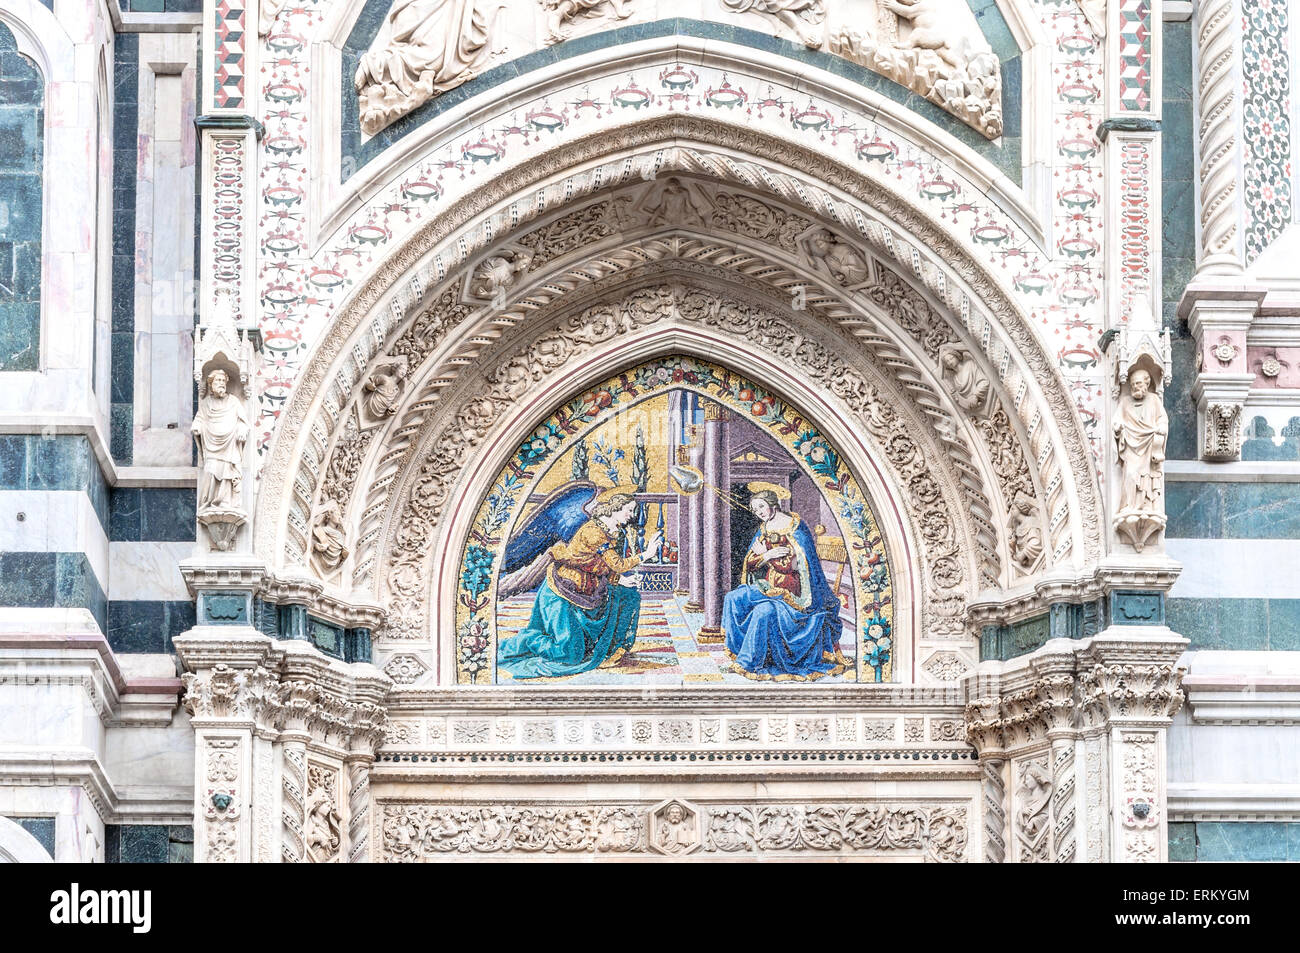 Detail of Santa Maria del Fiore Cathedral, the main church in Florence, known as Duomo di Firenze. - Stock Image